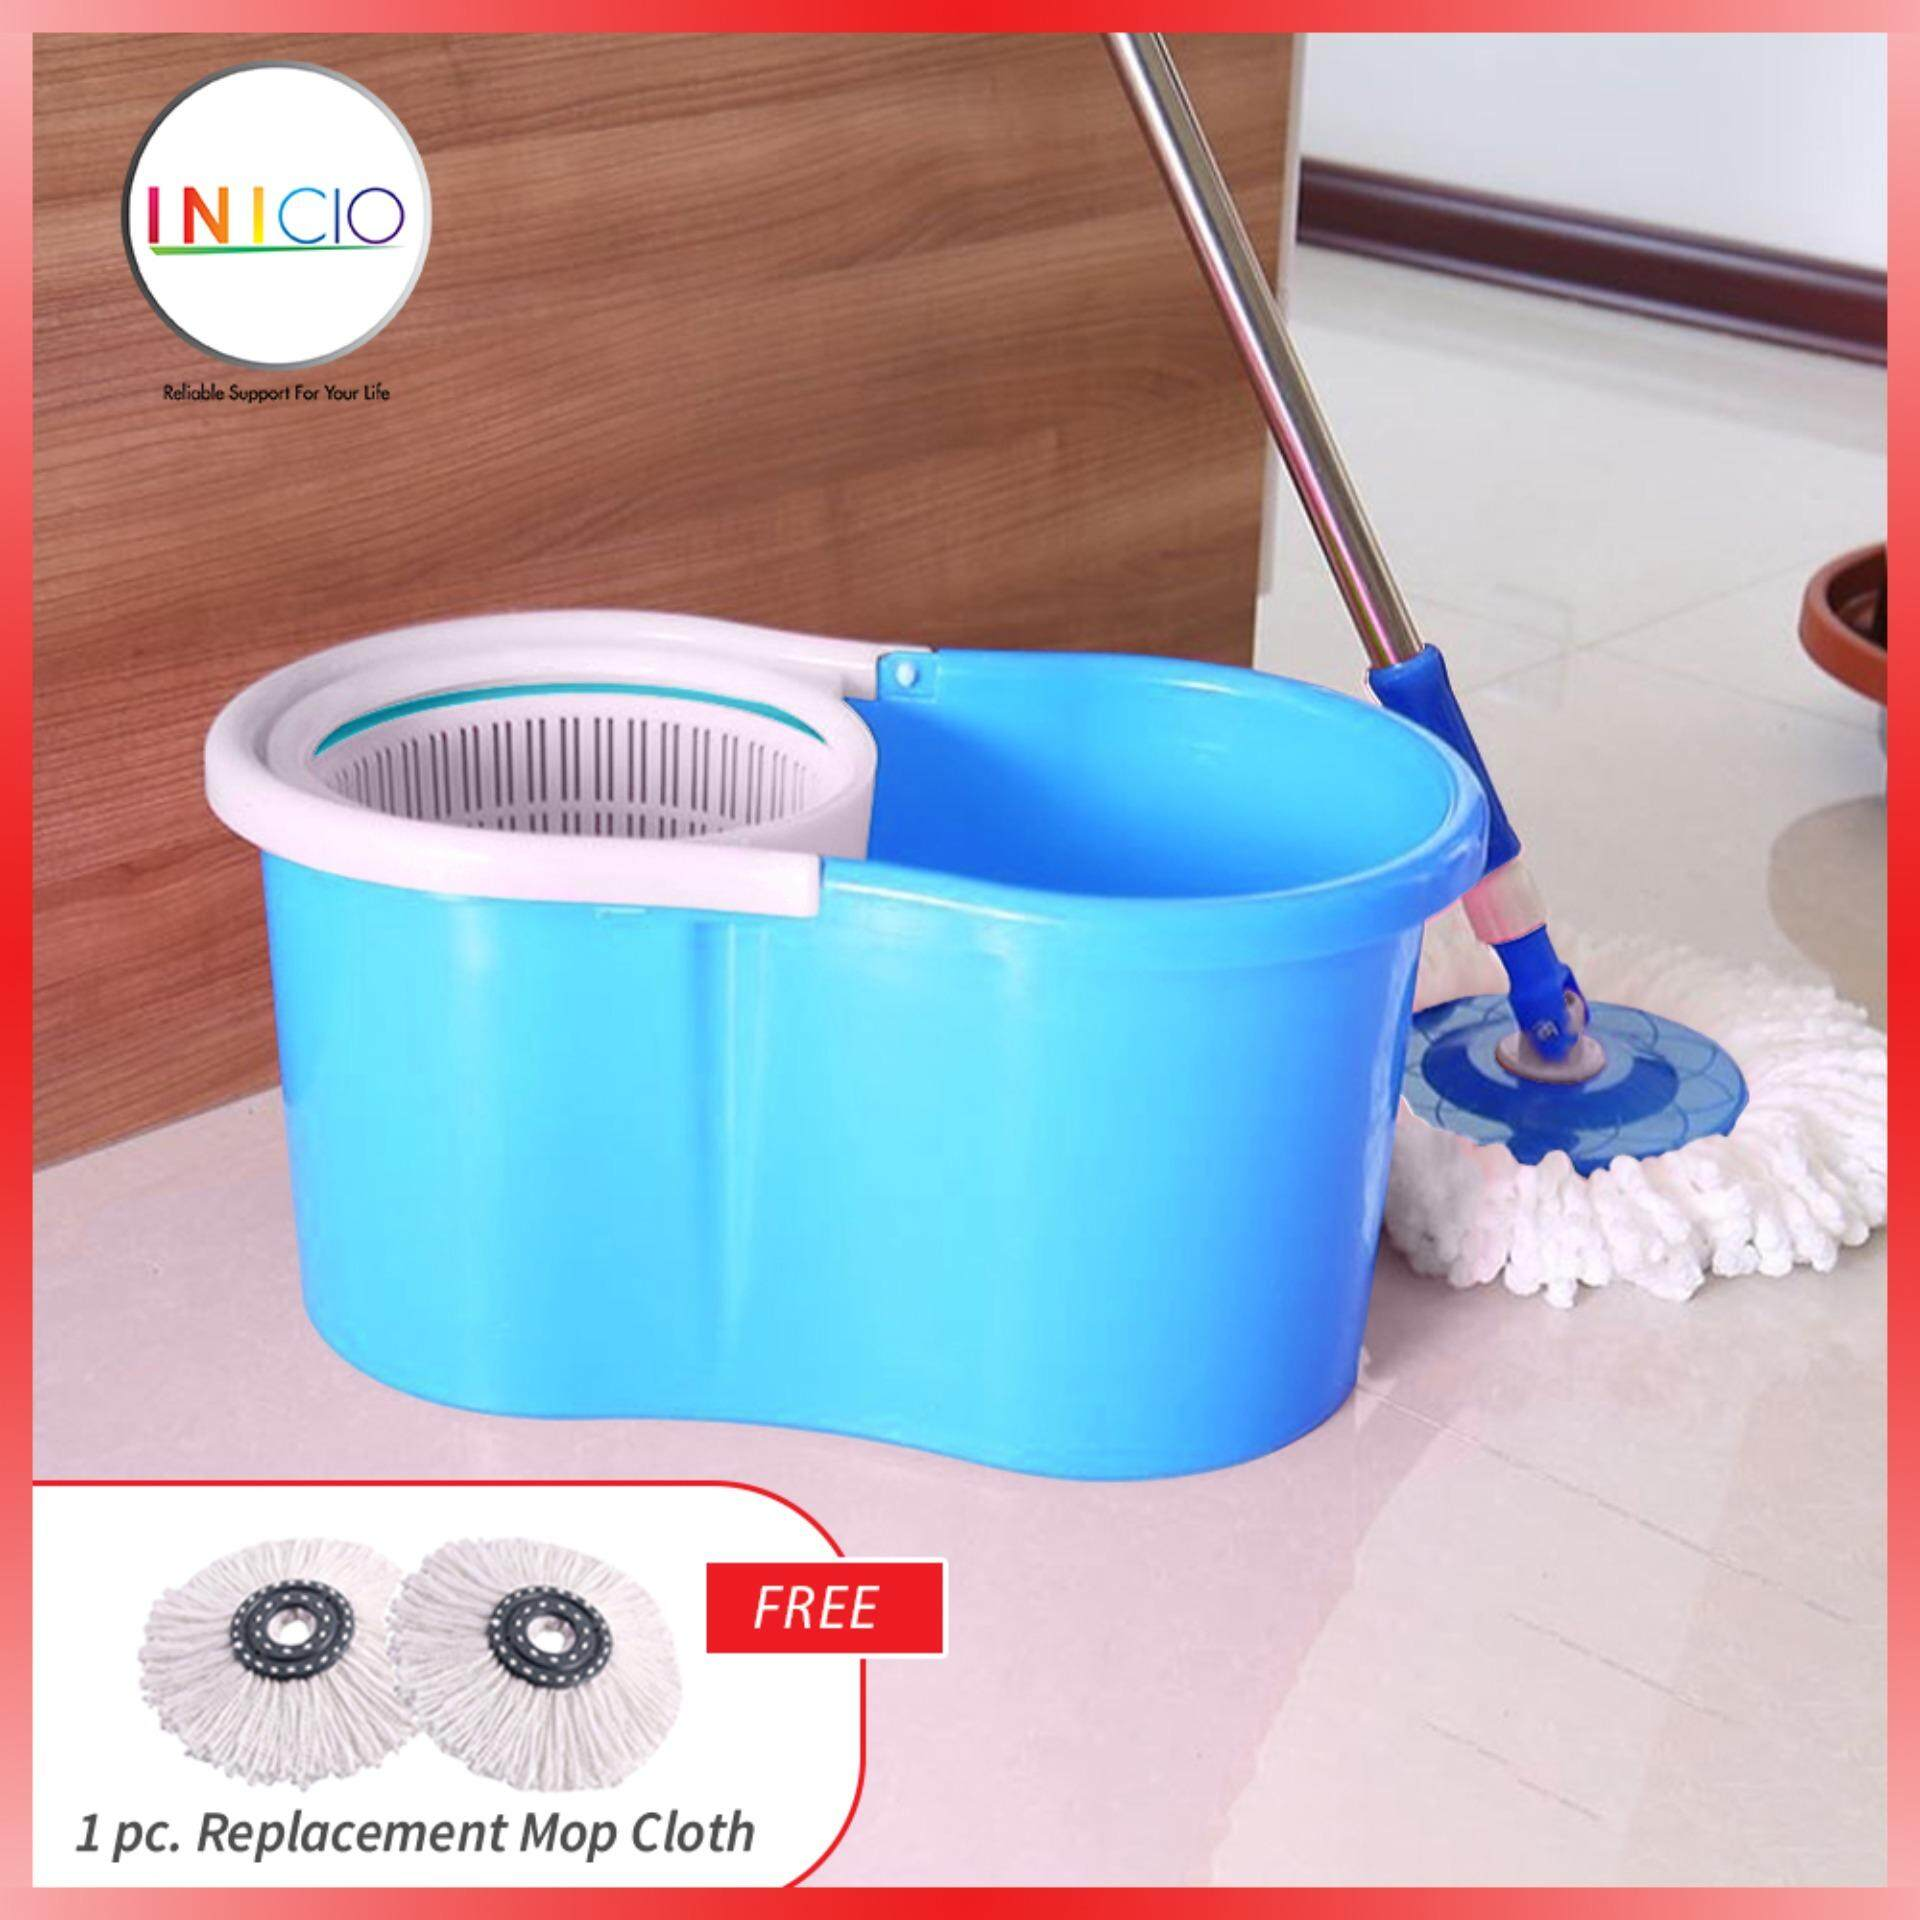 Inicio : Portable Magic Spin Mop Cleaner (mop Spinner / Mop Lantai) With 1 Mop Heads + Free 1 Pc. Replacement Mop Cloth By Inicio.